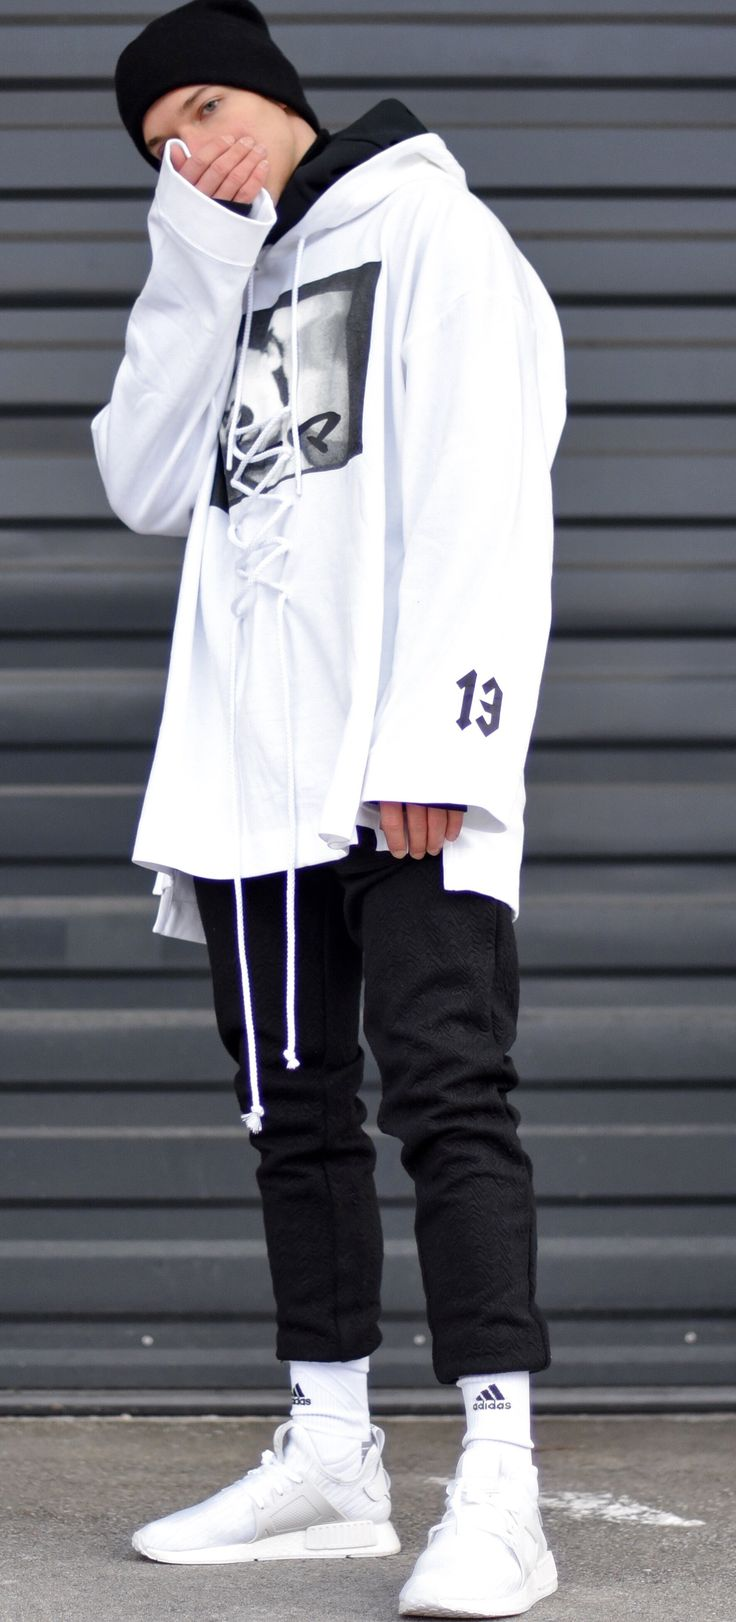 17 Best ideas about Puma Outfit on Pinterest | Dope outfits Pumas and Puma clothes